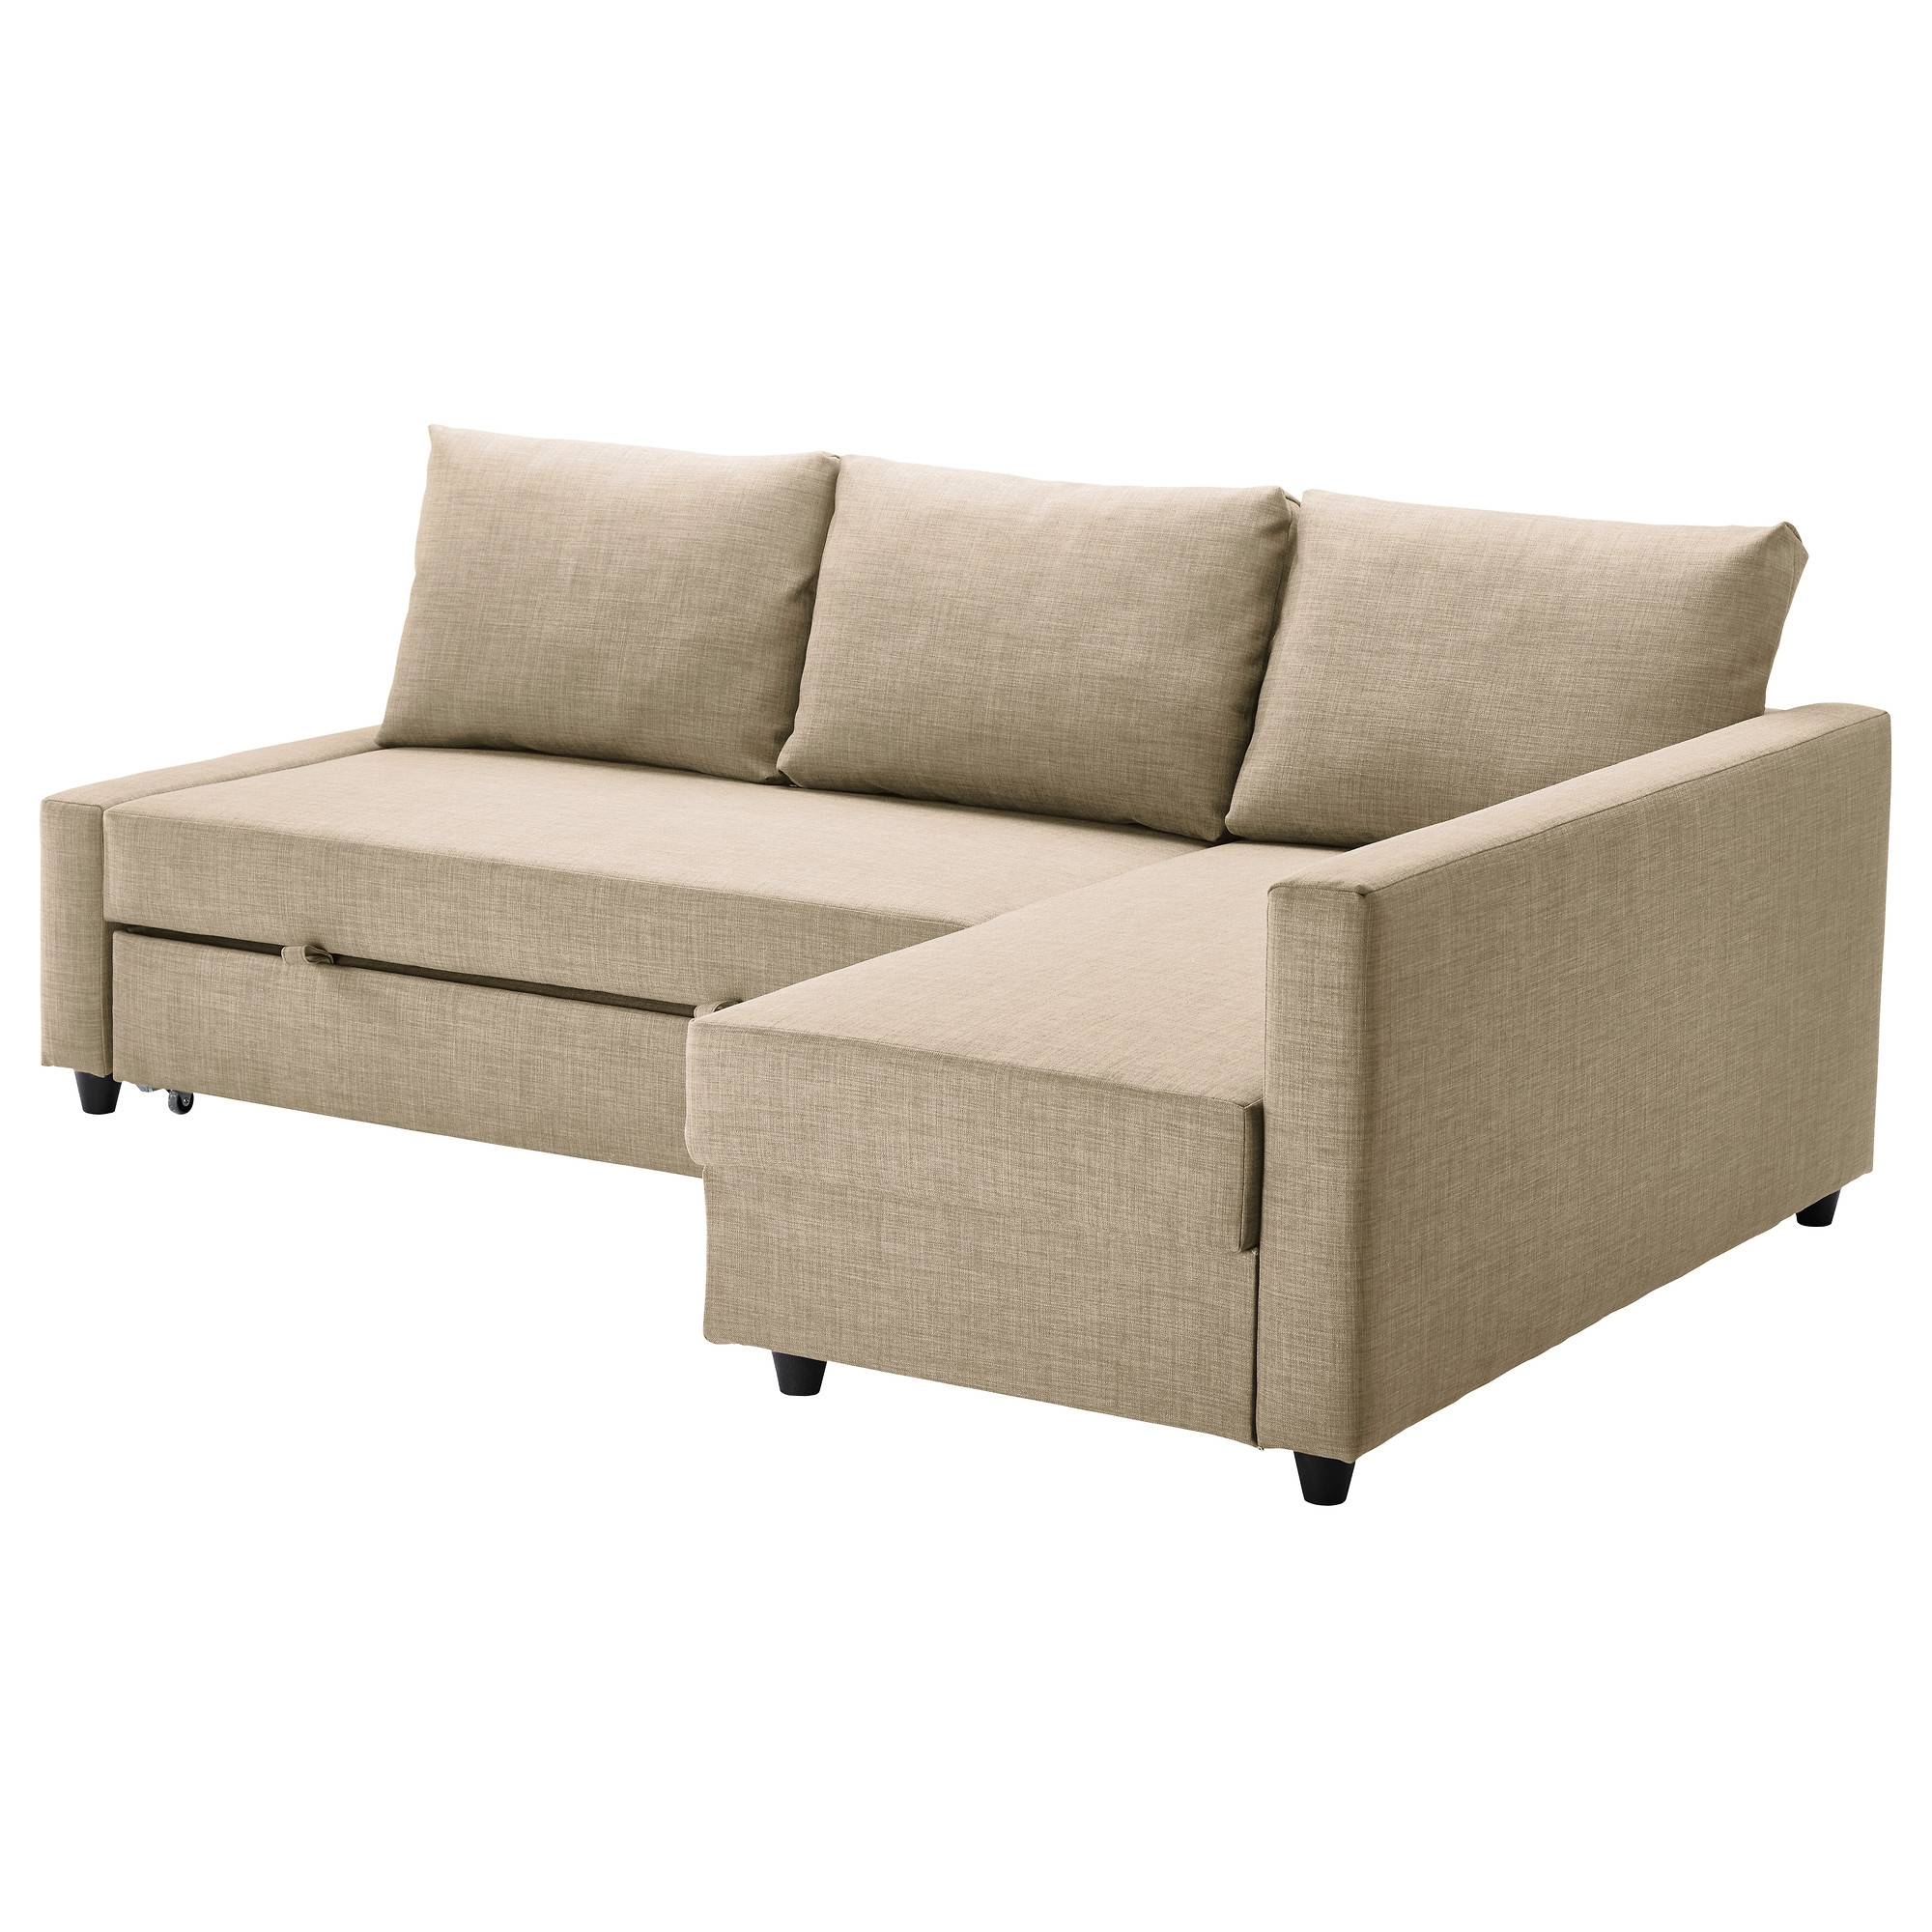 The Best Sofa Bed Sleepers